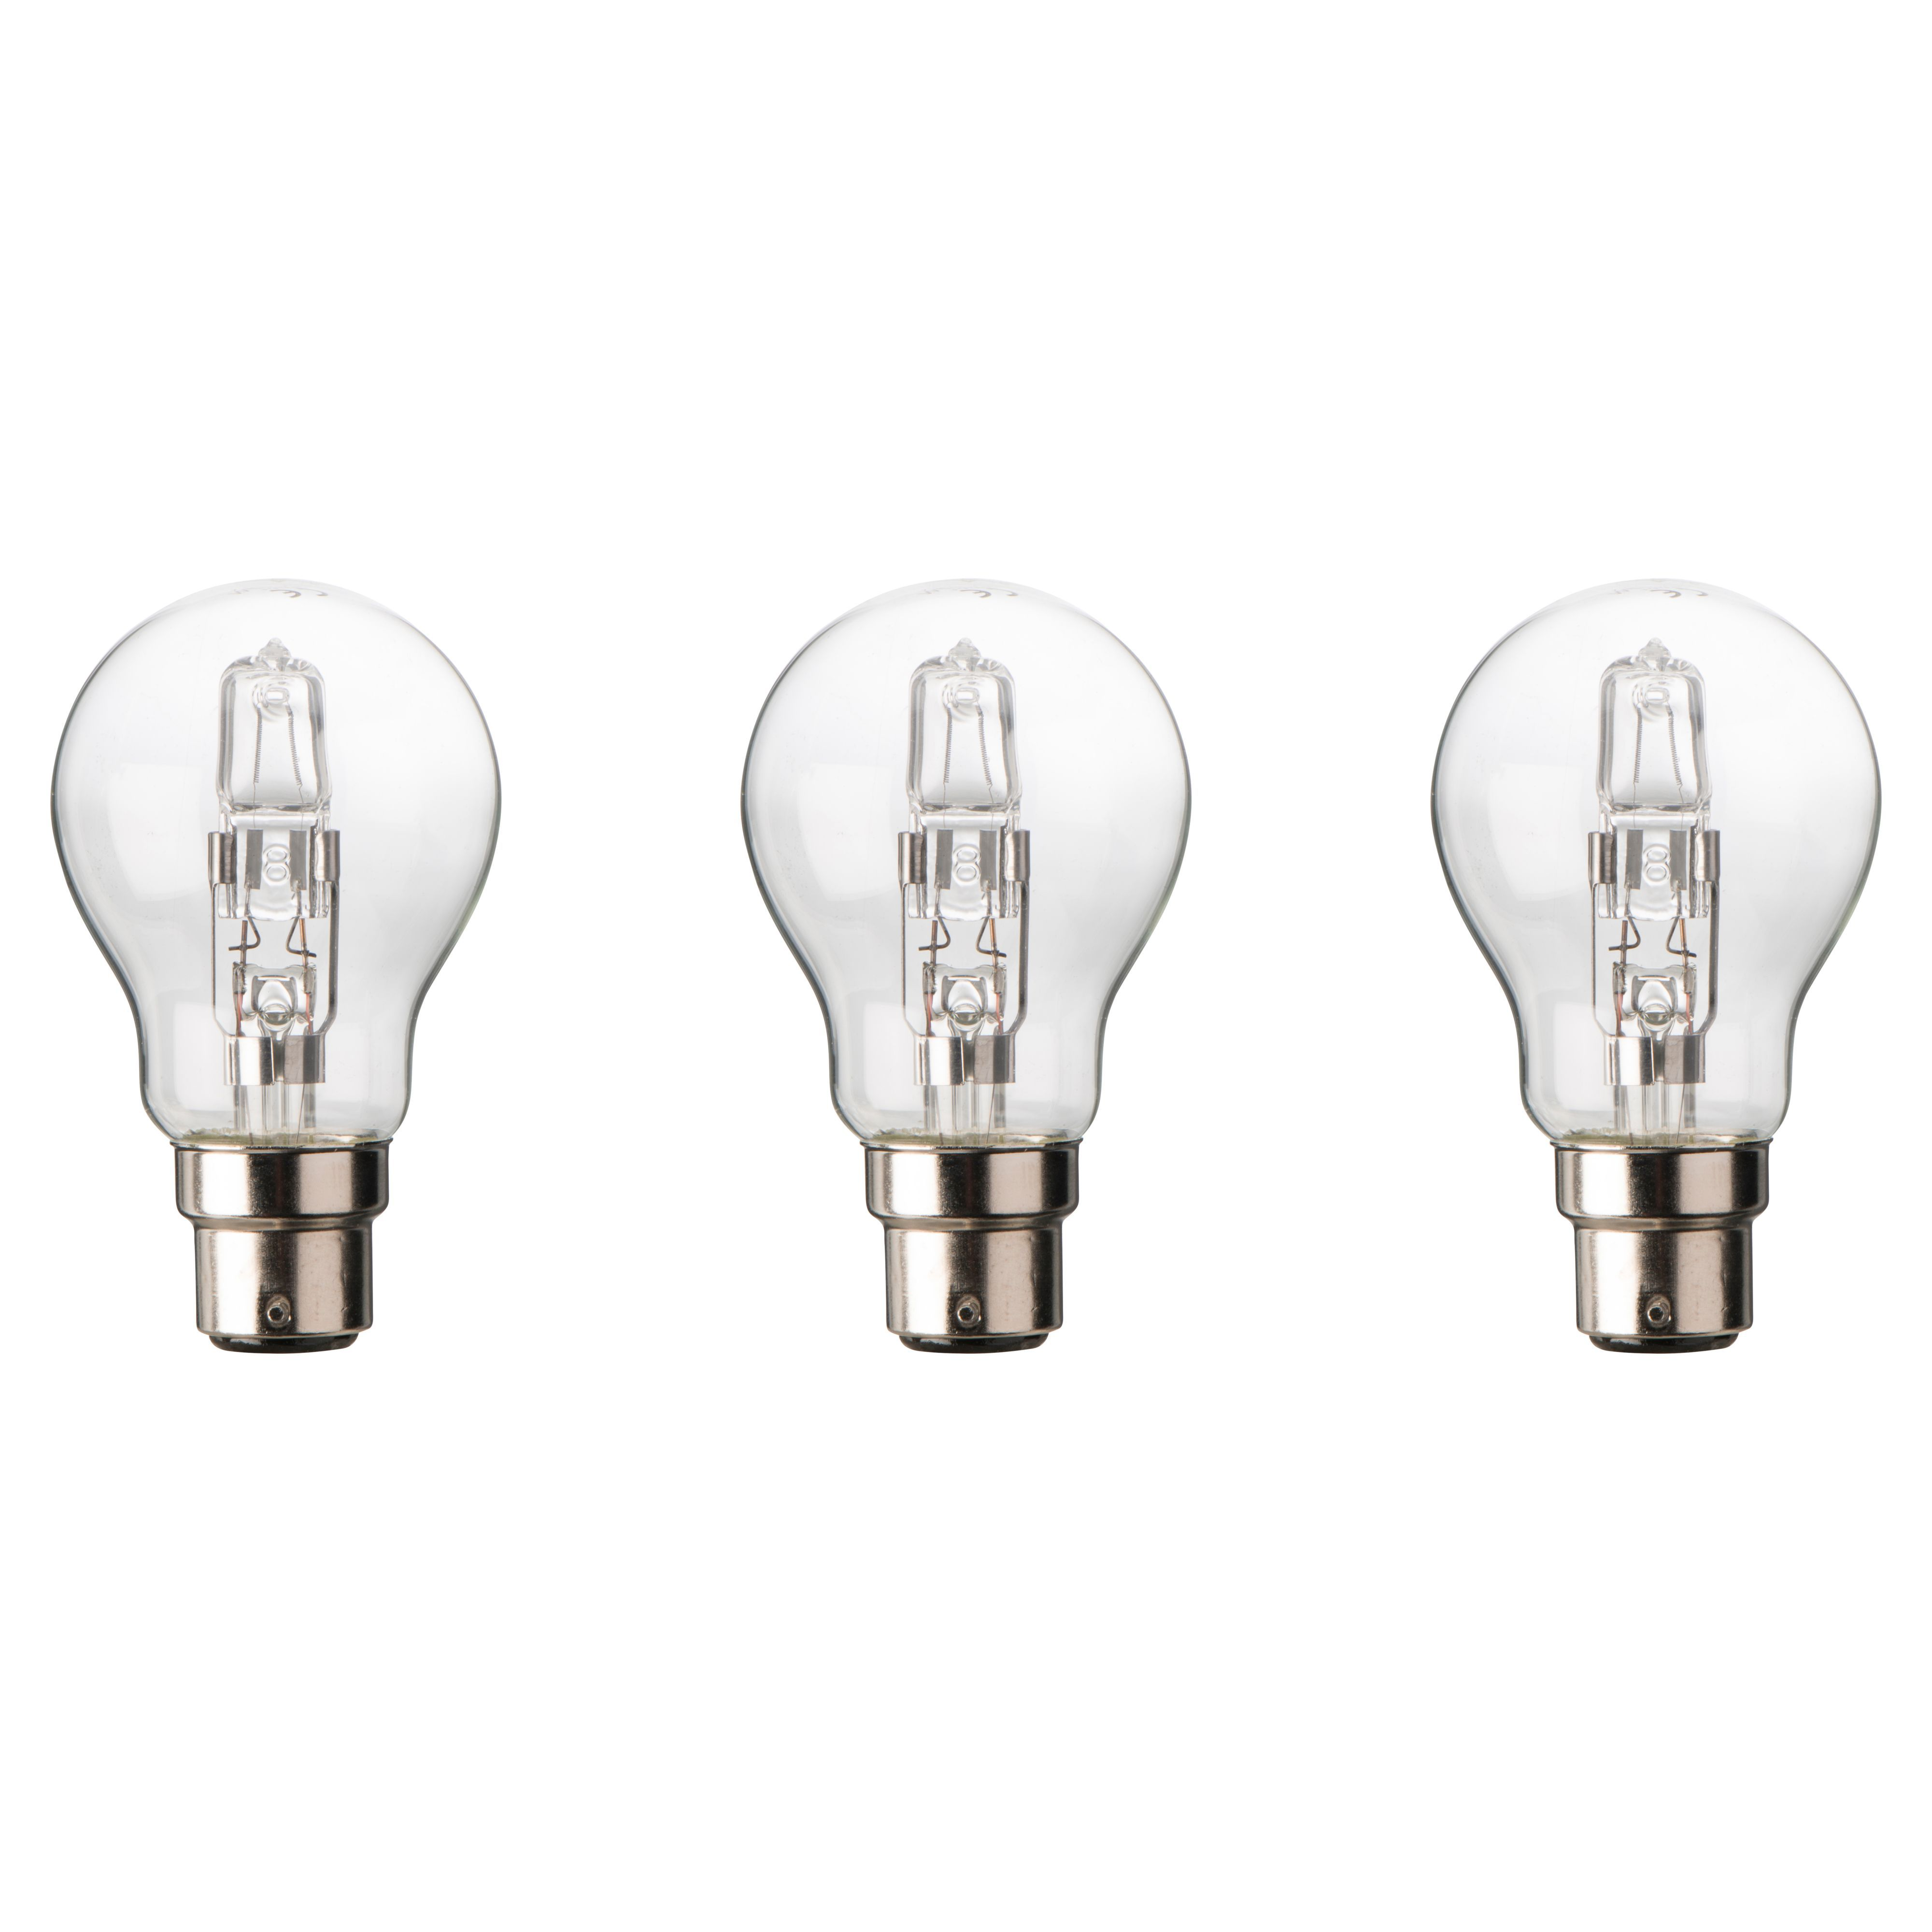 Diall B22 77W Halogen Dimmable Classic Light bulb, Pack of 3 | Departments  | DIY at B&Q